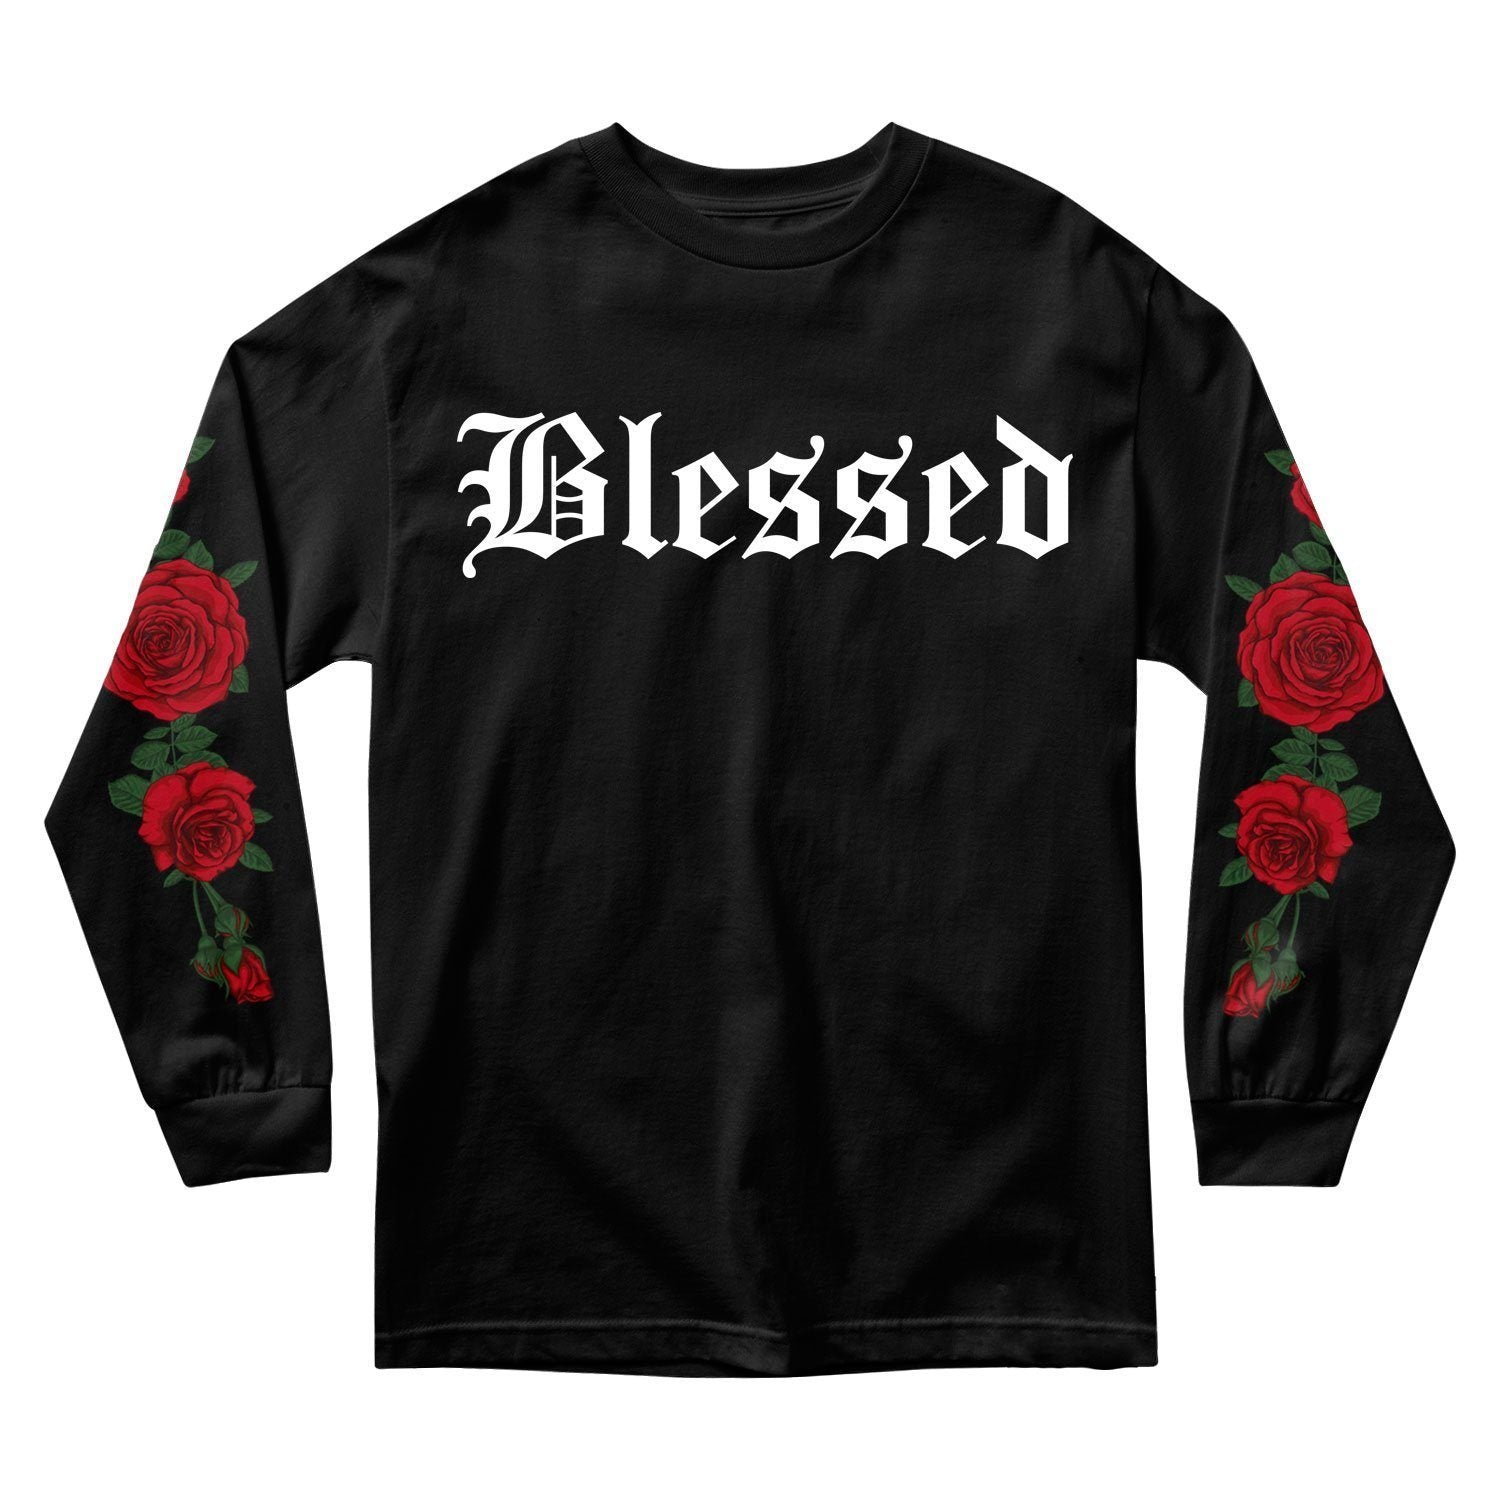 MEN S LONG SLEEVE TEE - BLESSED ROSES LONG SLEEVE - BLACK bfe1d5396